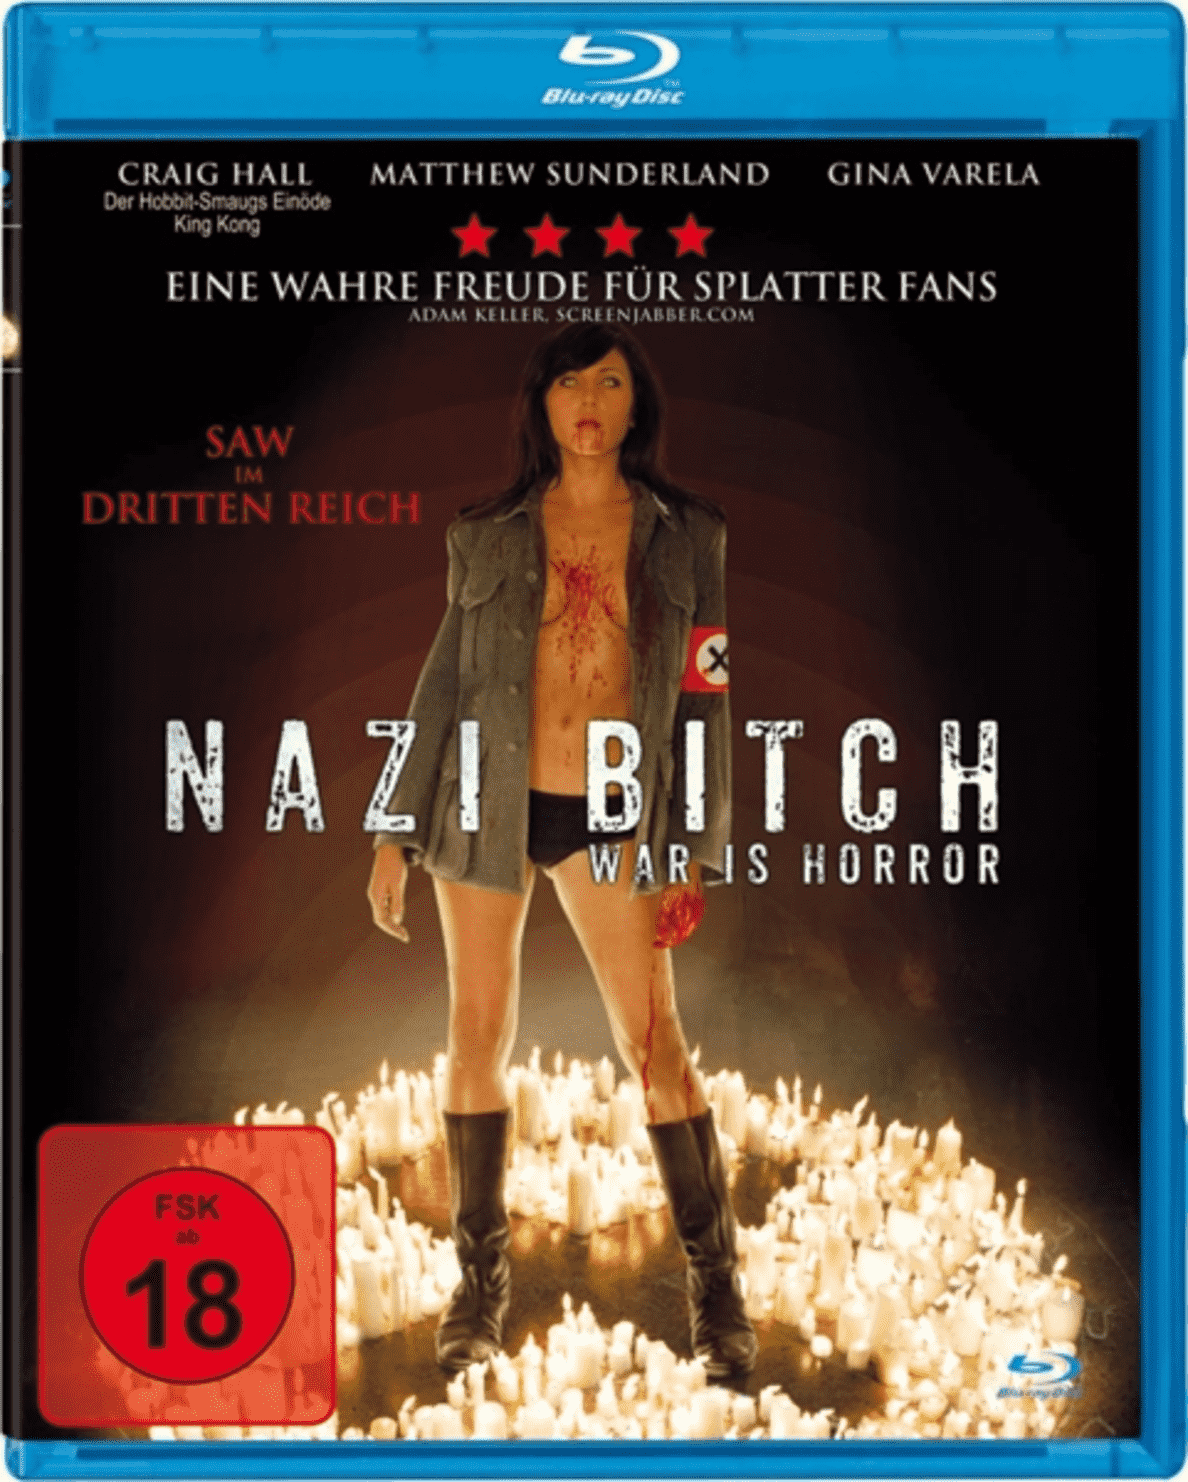 Nazi Bitch - War Is Horror (a.k.a. The Devil´s Rock) auf Blu-ray